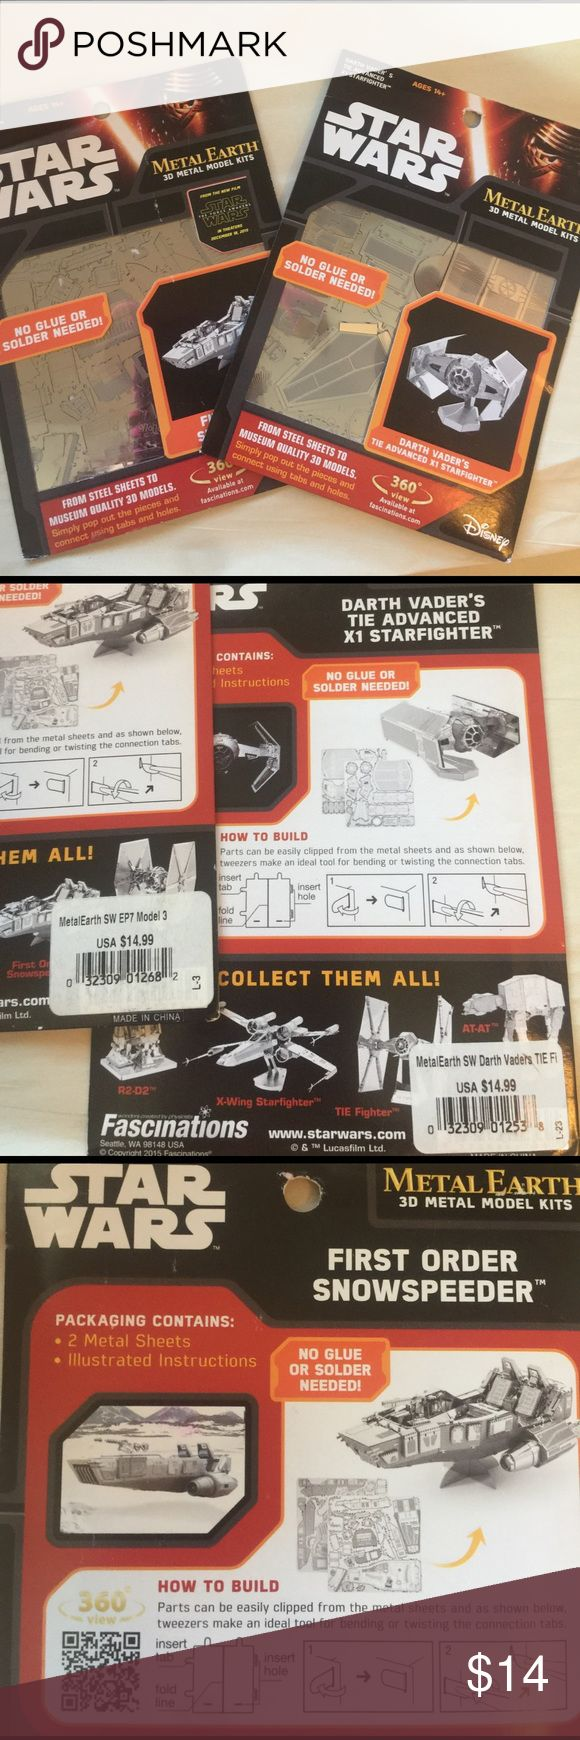 SET OF 2⭐Star Wars METAL EARTH 3D Metal Model Kit Brand new & unopened. Star Wars middle earth 3-D model model kits. No glue or solder needed. Real metal! These things are super cool. Star Wars Other